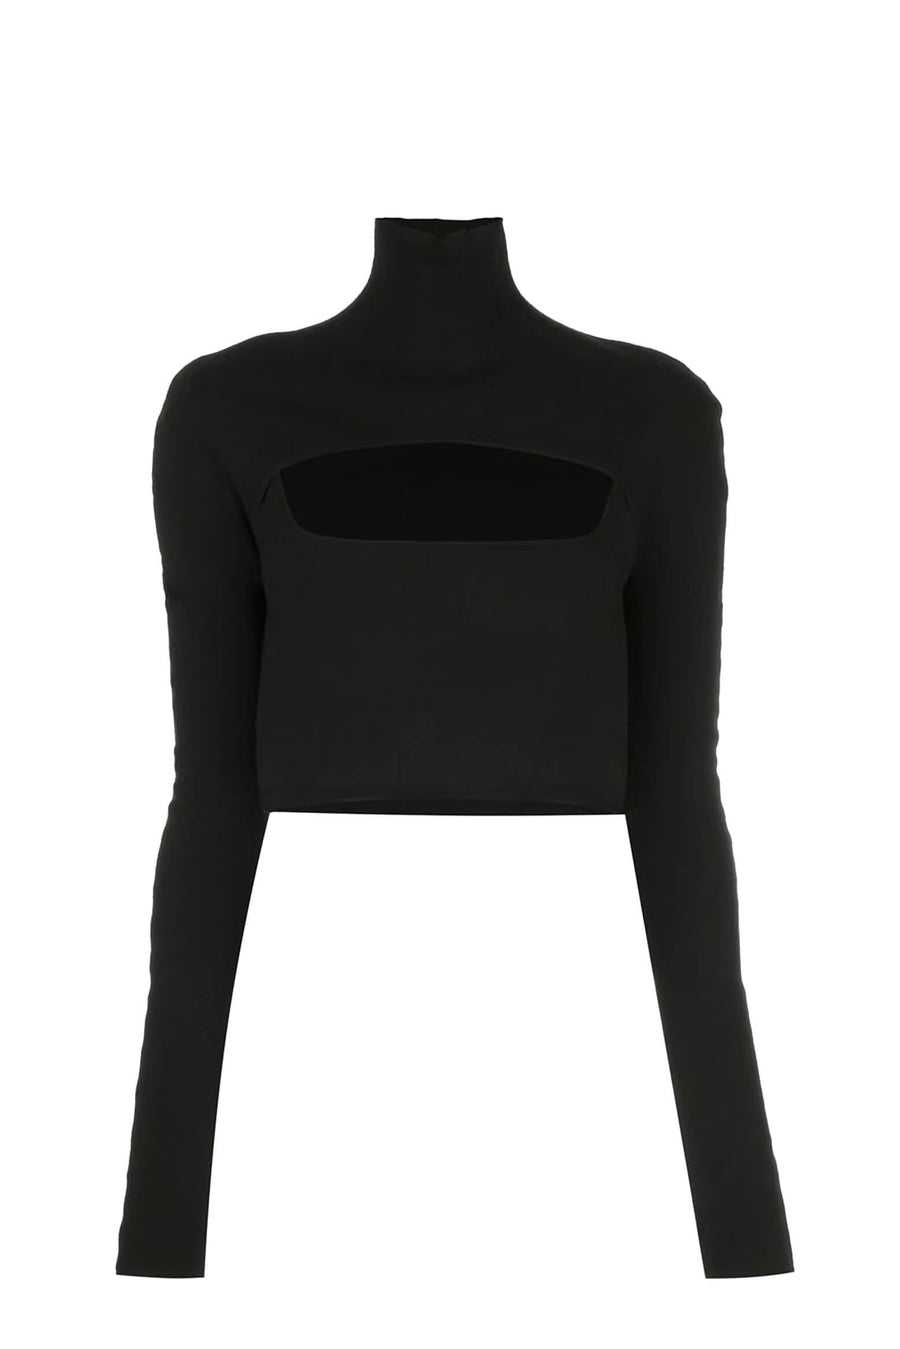 Dion Lee Merino Stirrup Top in Black from The New Trend